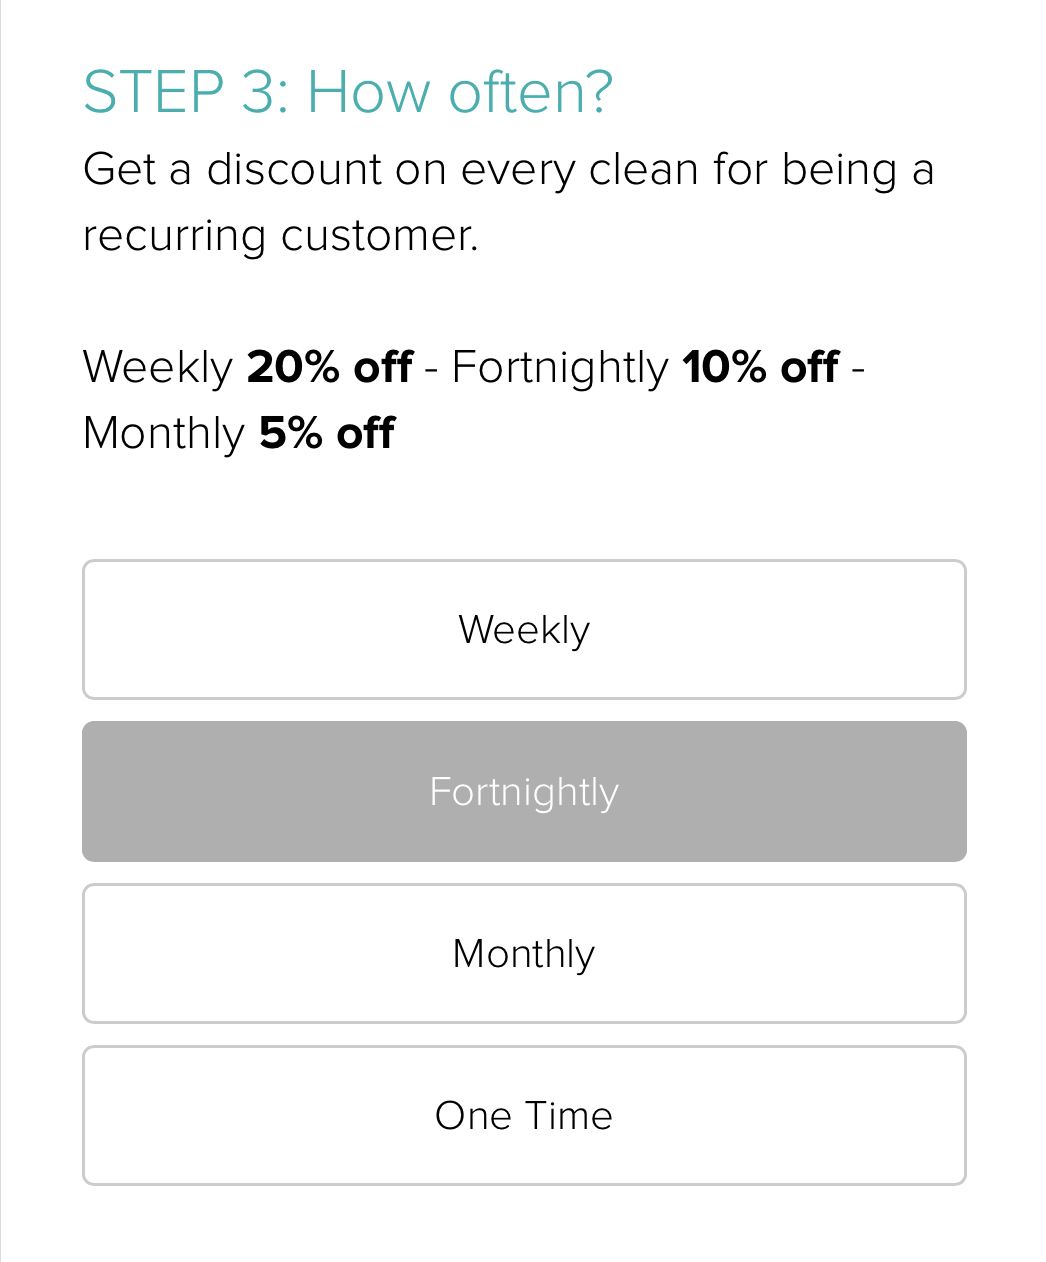 Choose a weekly or fortnightly clean for a recurring discount